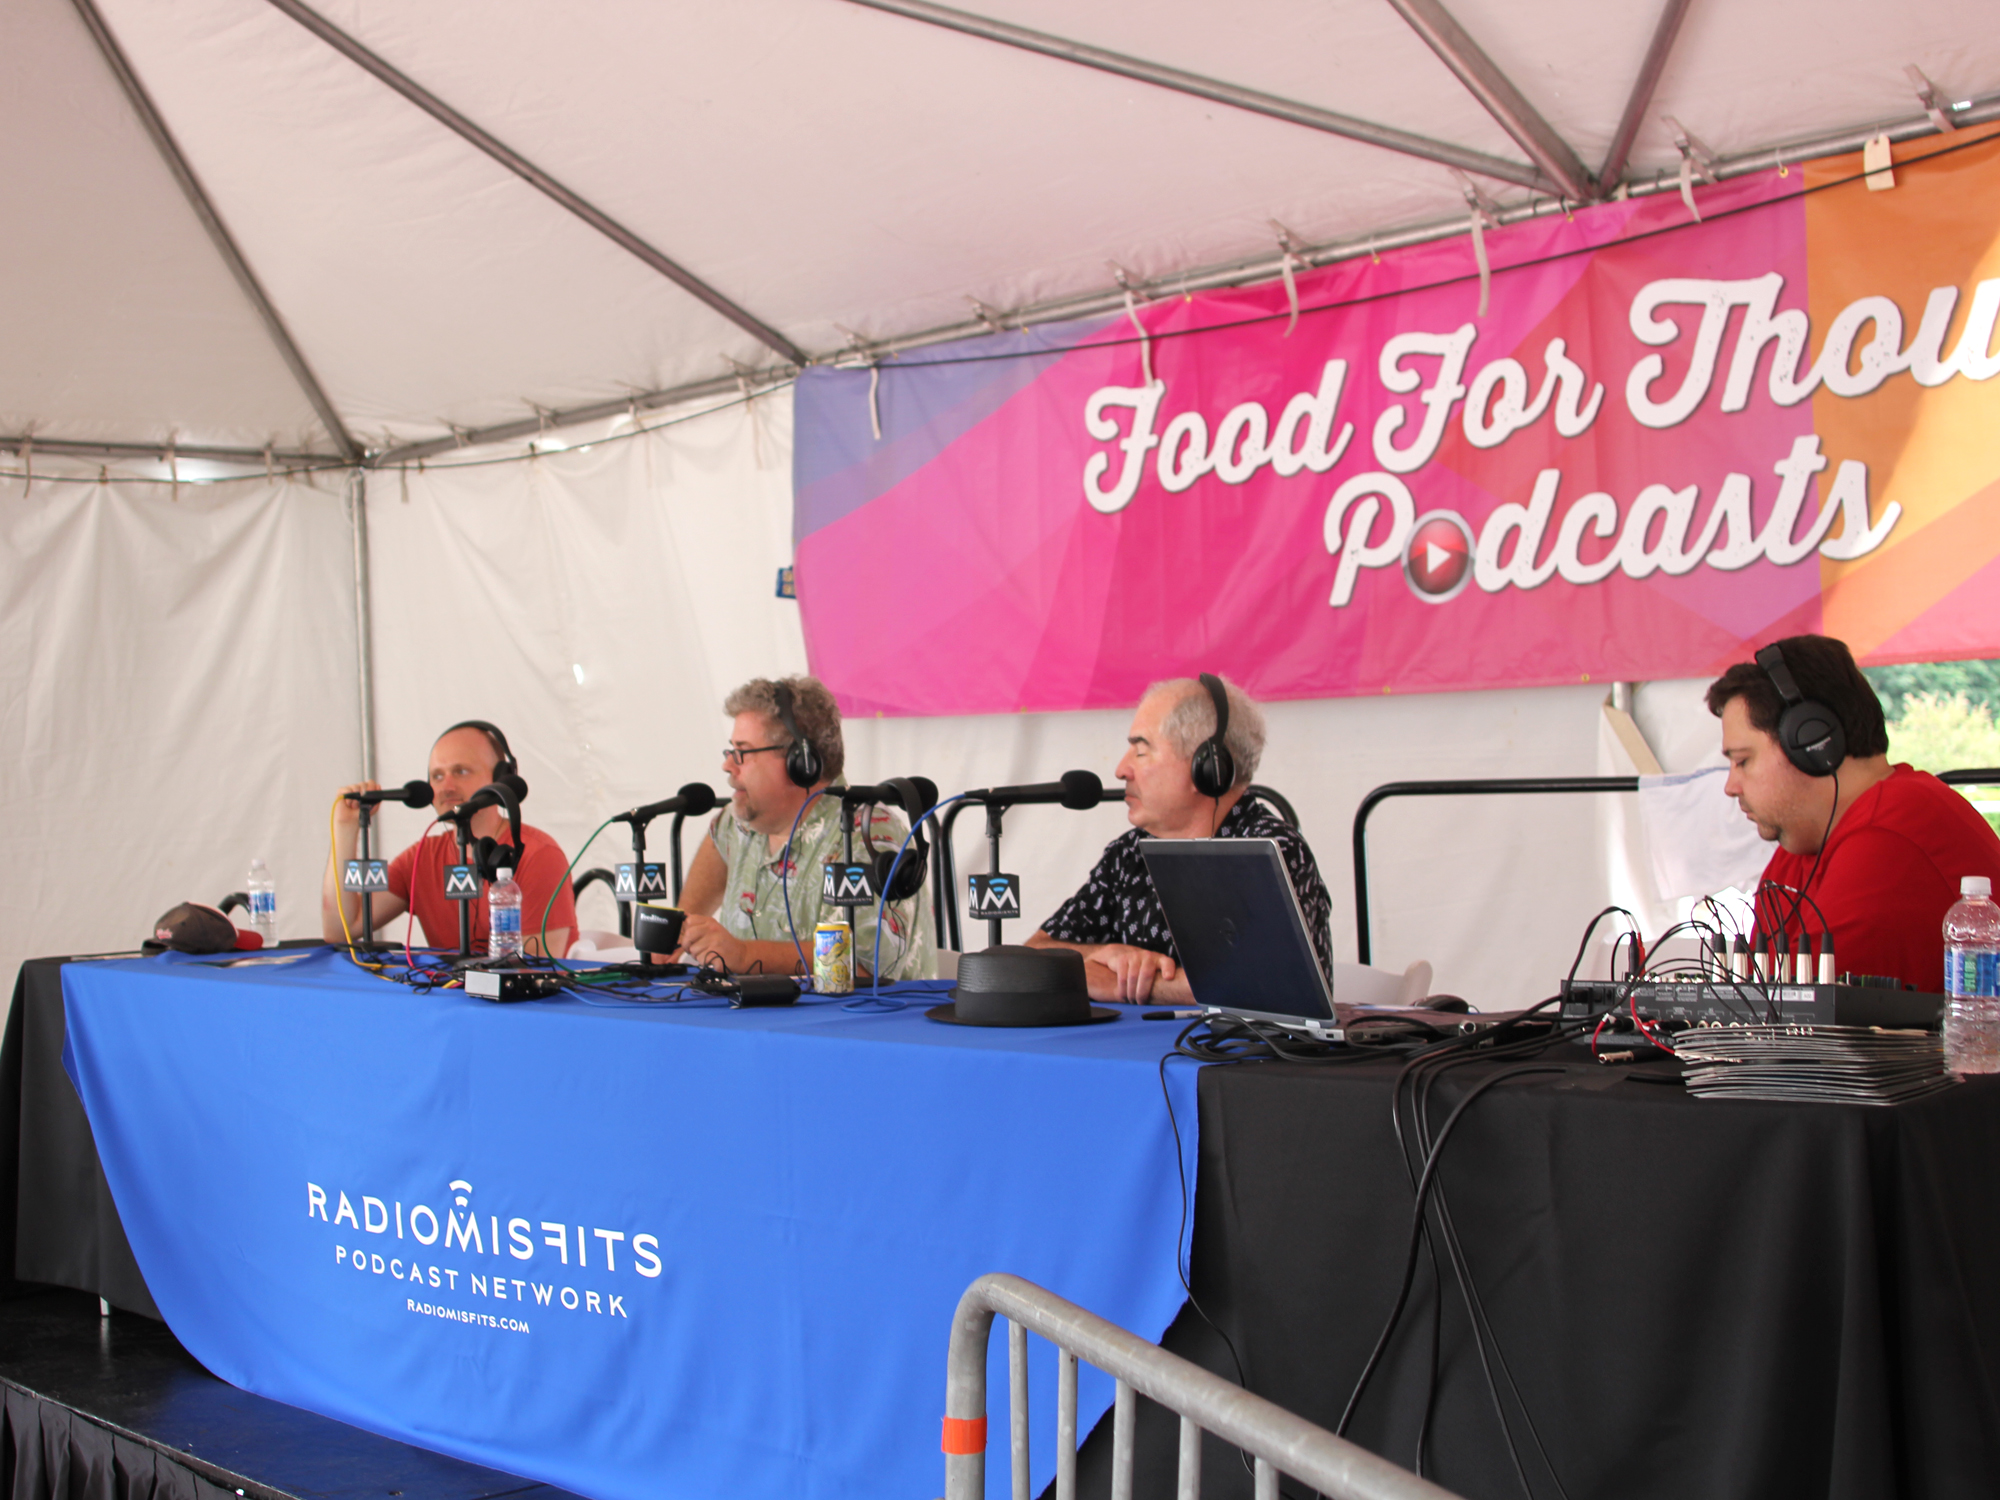 FOODITOR RADIO: <br>TACOS, BURGERS AND OTHER TASTES OF CHICAGO